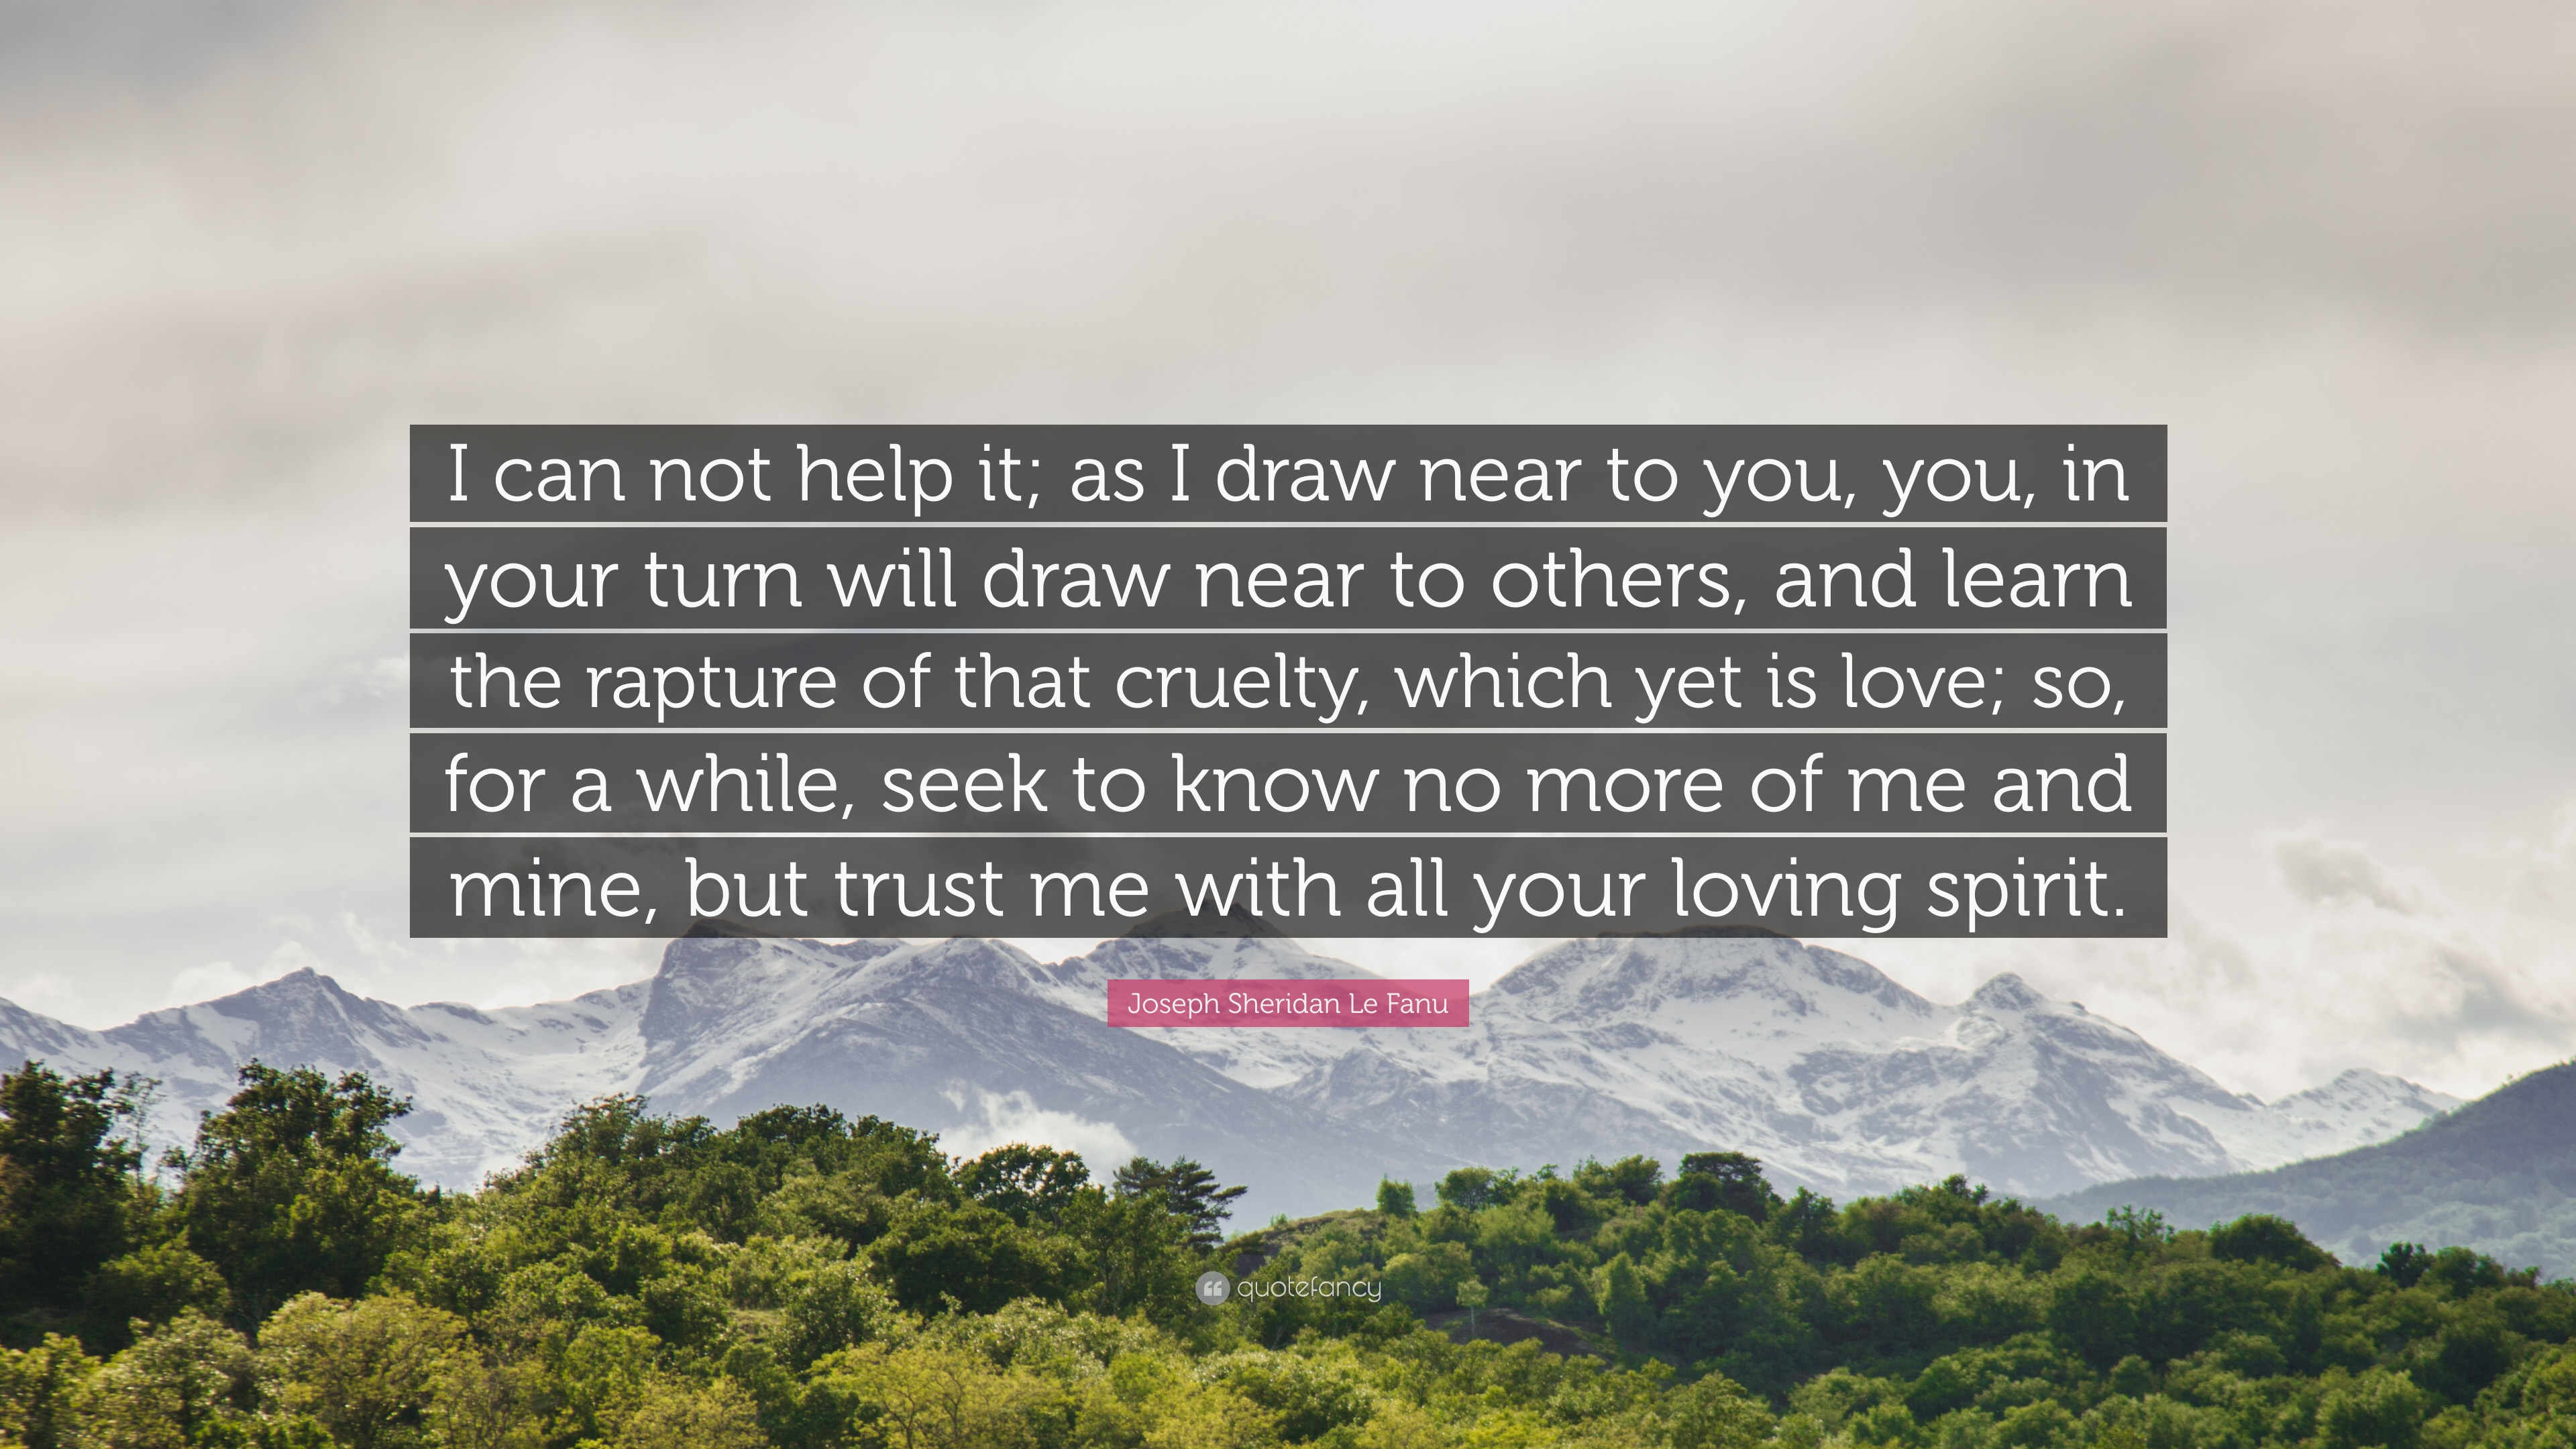 Joseph Sheridan Le Fanu Quote I Can Not Help It As I Draw Near To